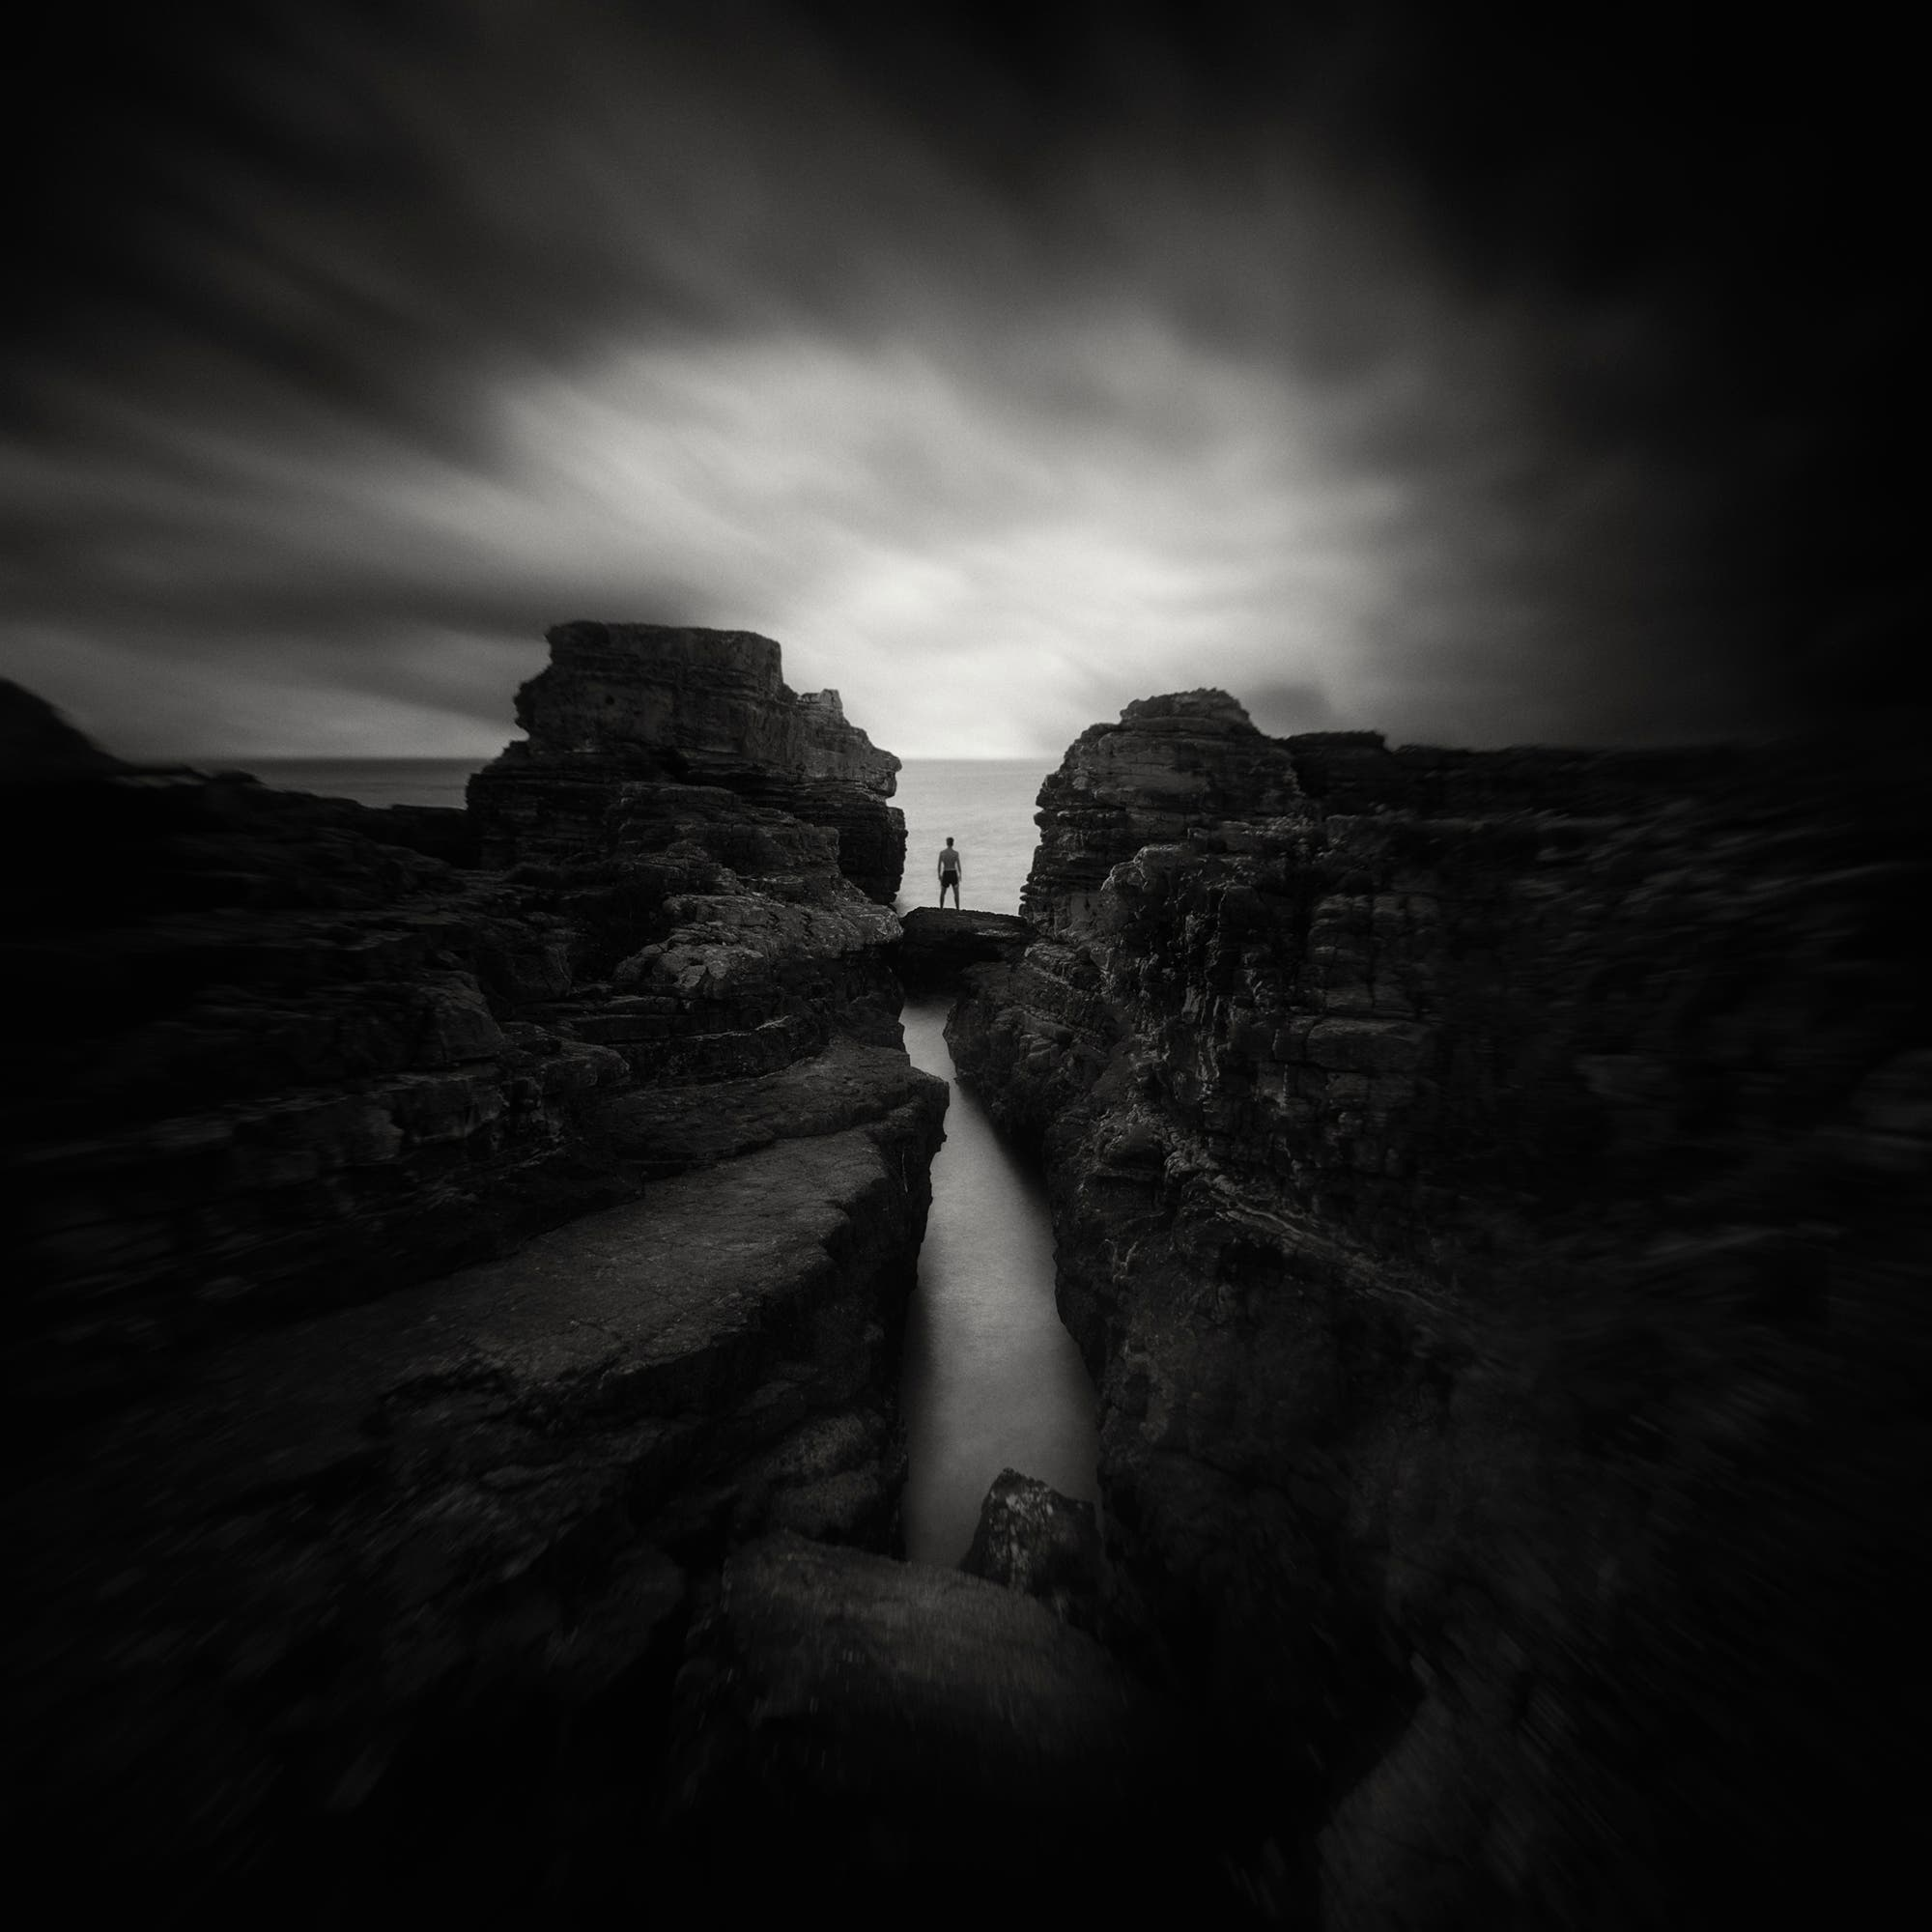 Yucel Basoglu's Haunting Black And White Landscape Photos